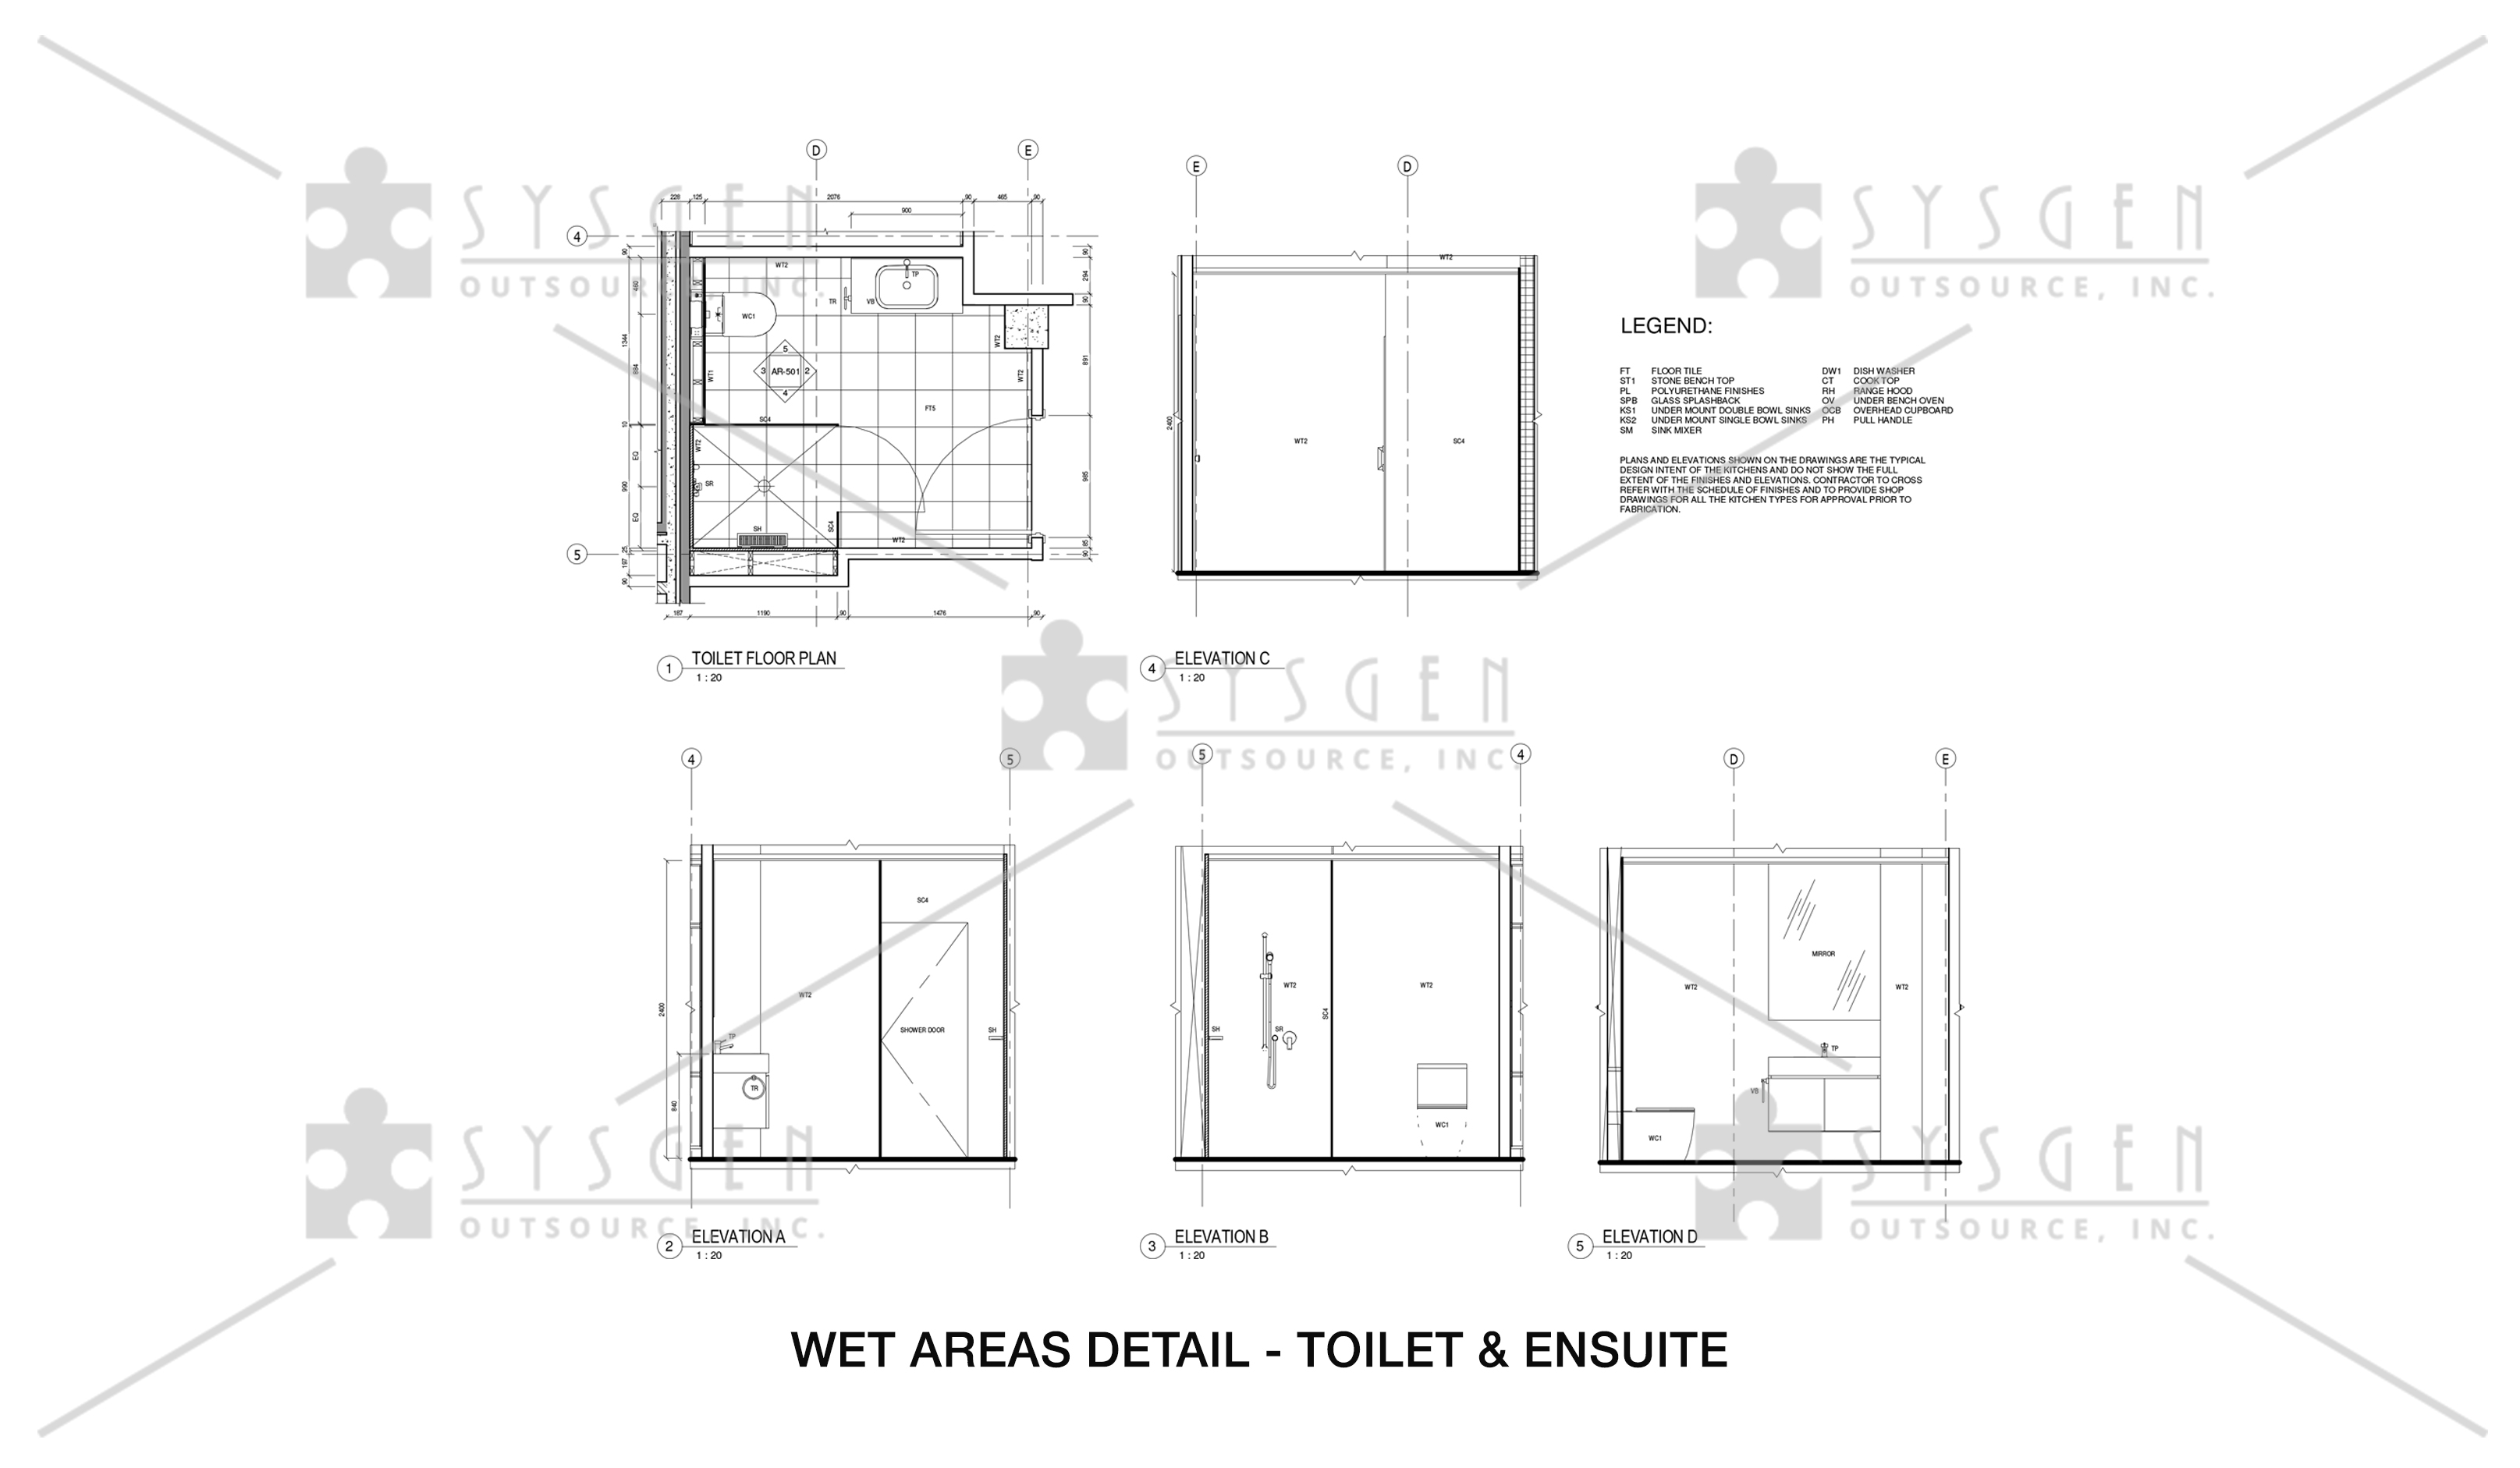 sysgen-outsource-cad-outsourcing-services-cad-conversion-revit-4-storey-residential16